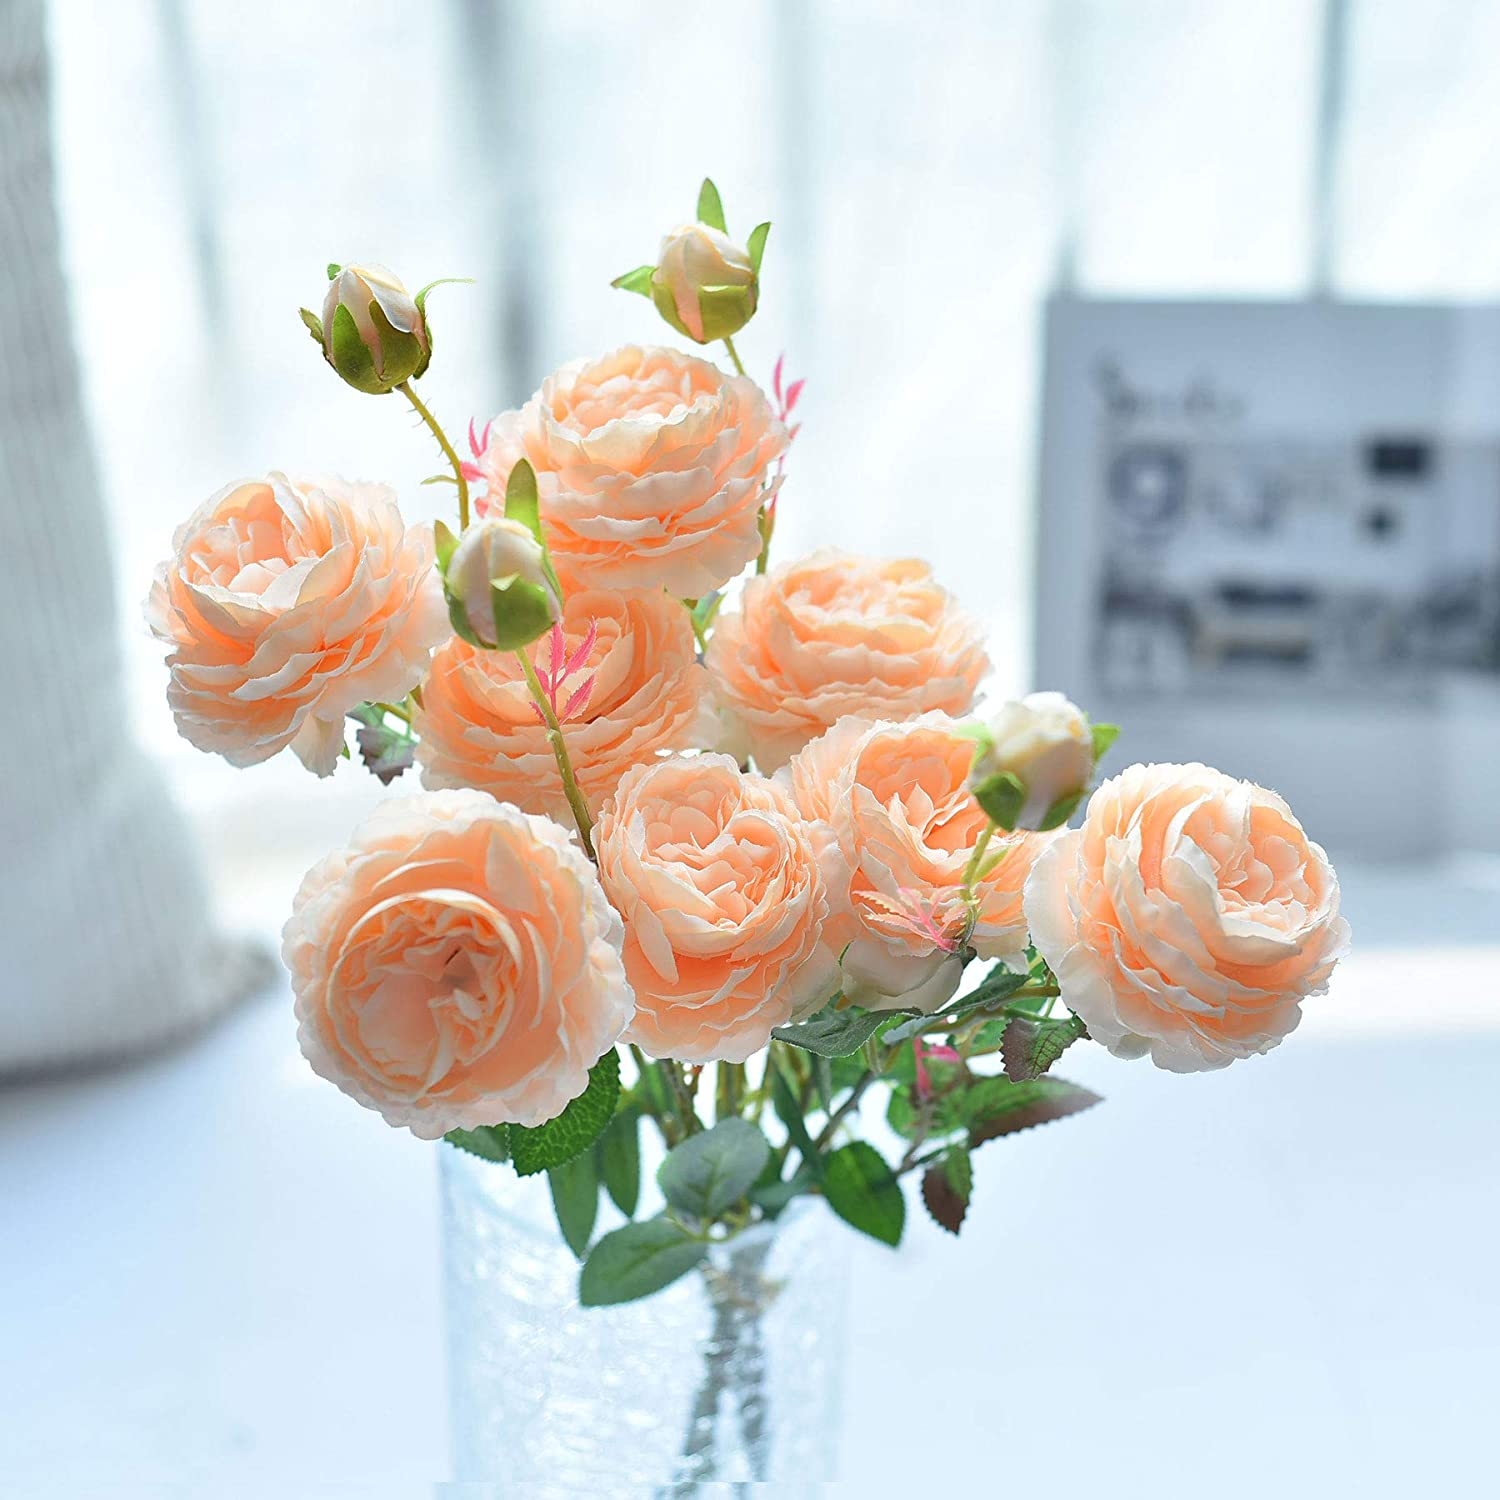 famibay Faux English Cabbage Rose 4 Branch 12 Stems Bundle Mixed Blooms & Buds Spays in Peach Pink, Artificial Silk Flowers & Fake Greenery, Indoor Outdoor Wedding Home Decor